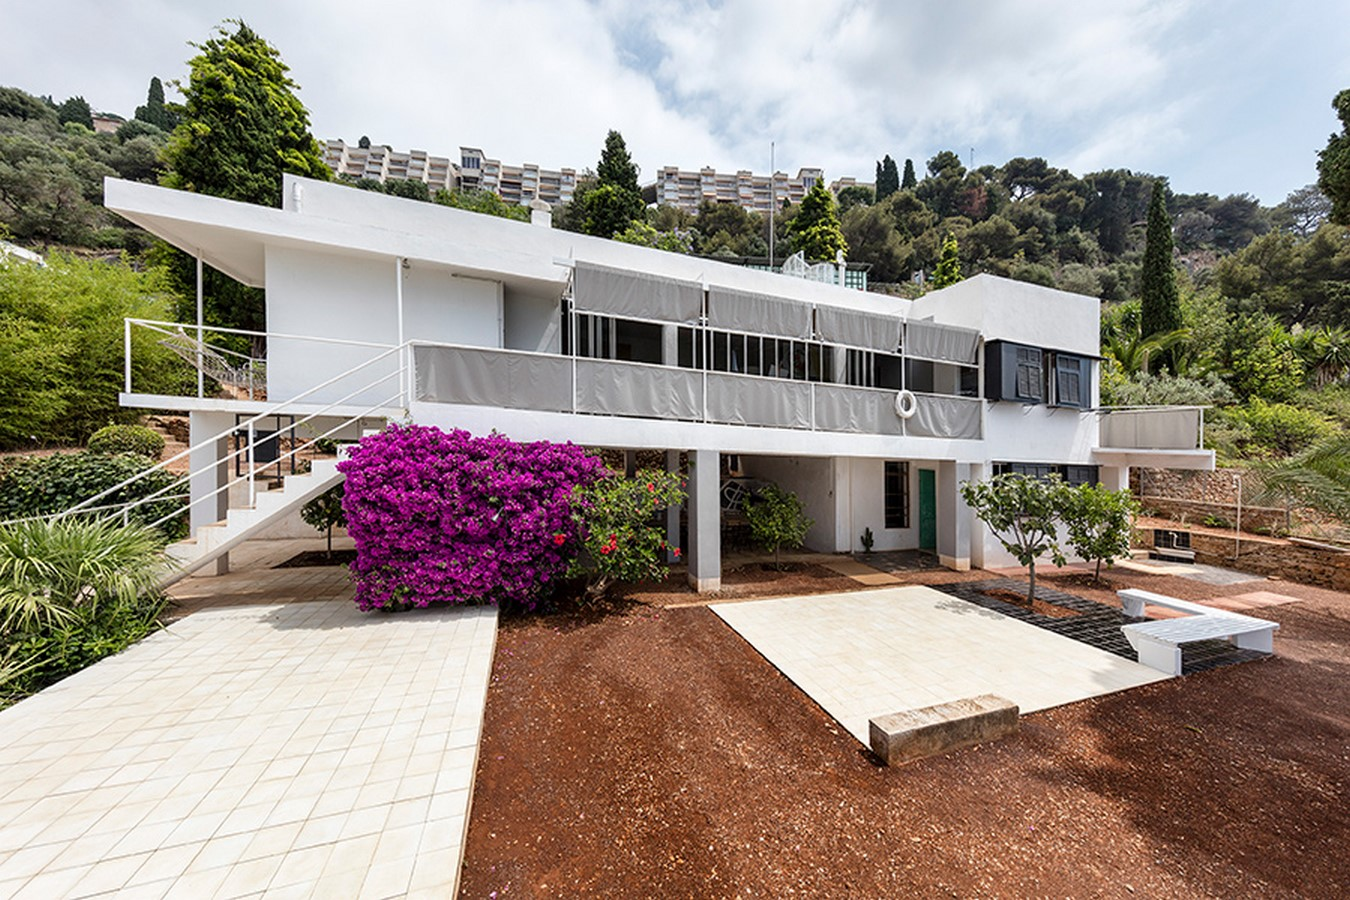 An iconic villa was designed by her without any architectural training - Sheet3